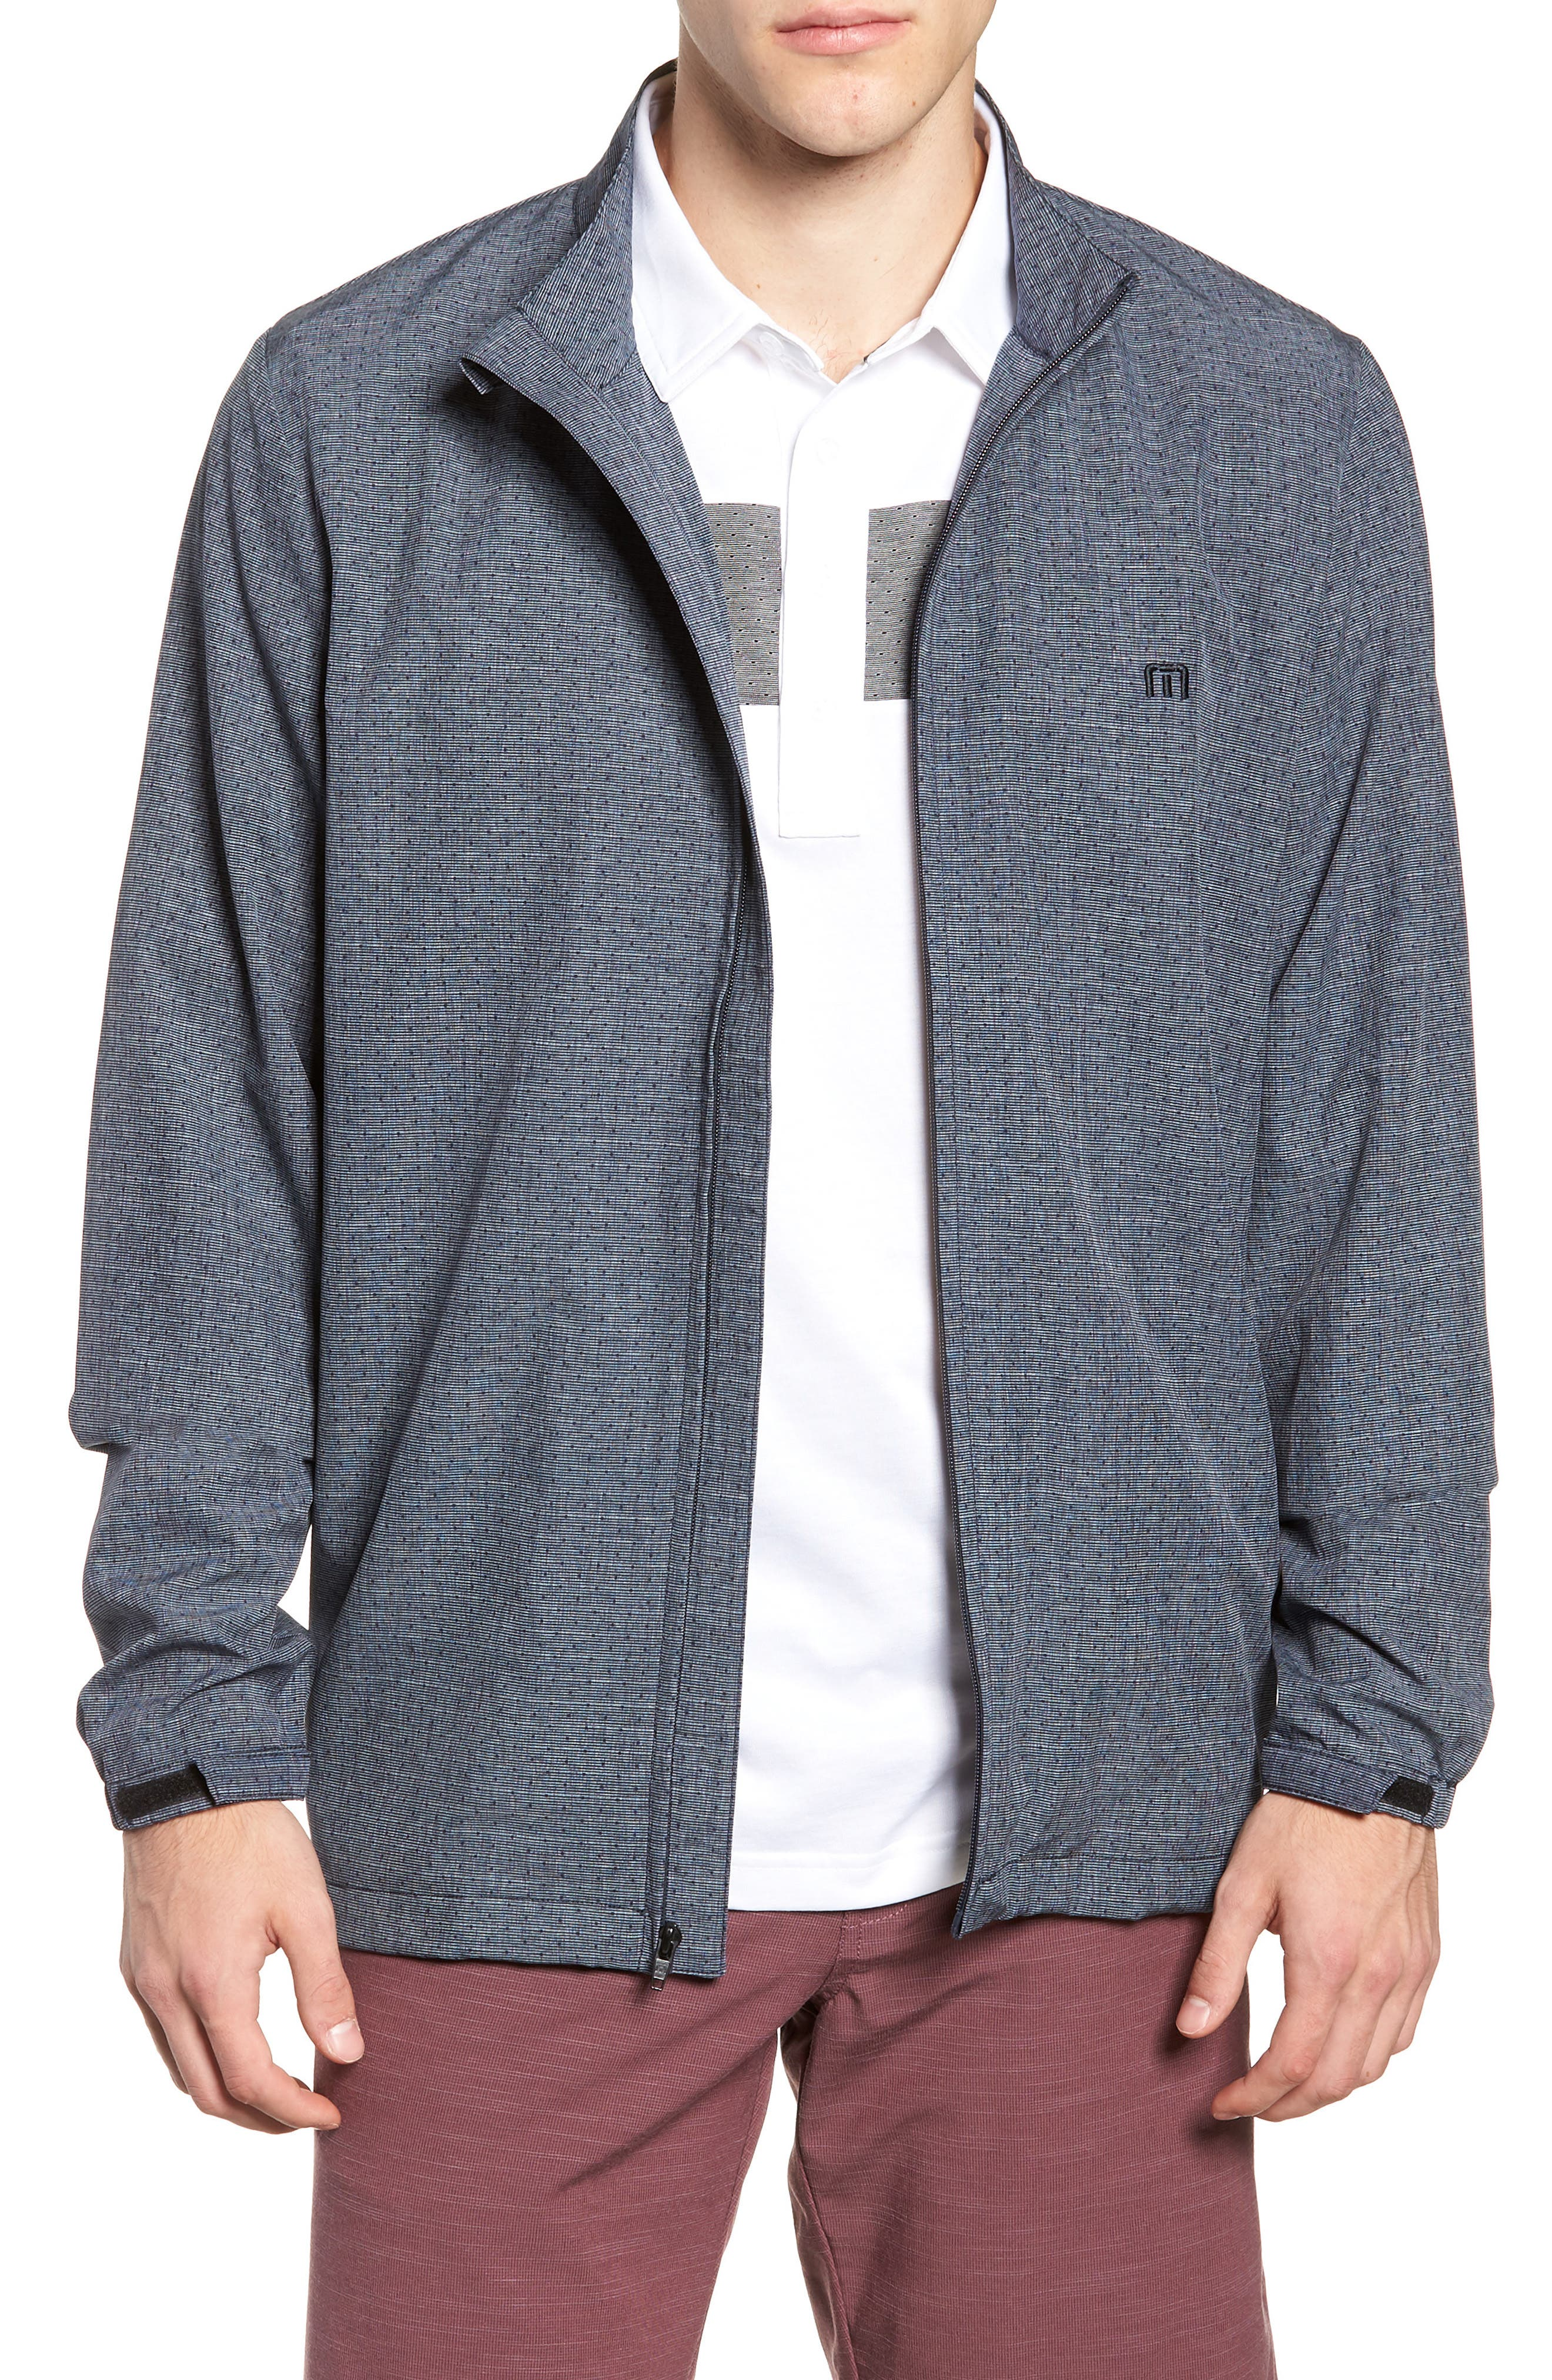 Wolf Pack Jacket,                         Main,                         color, HEATHER BLUE NIGHTS